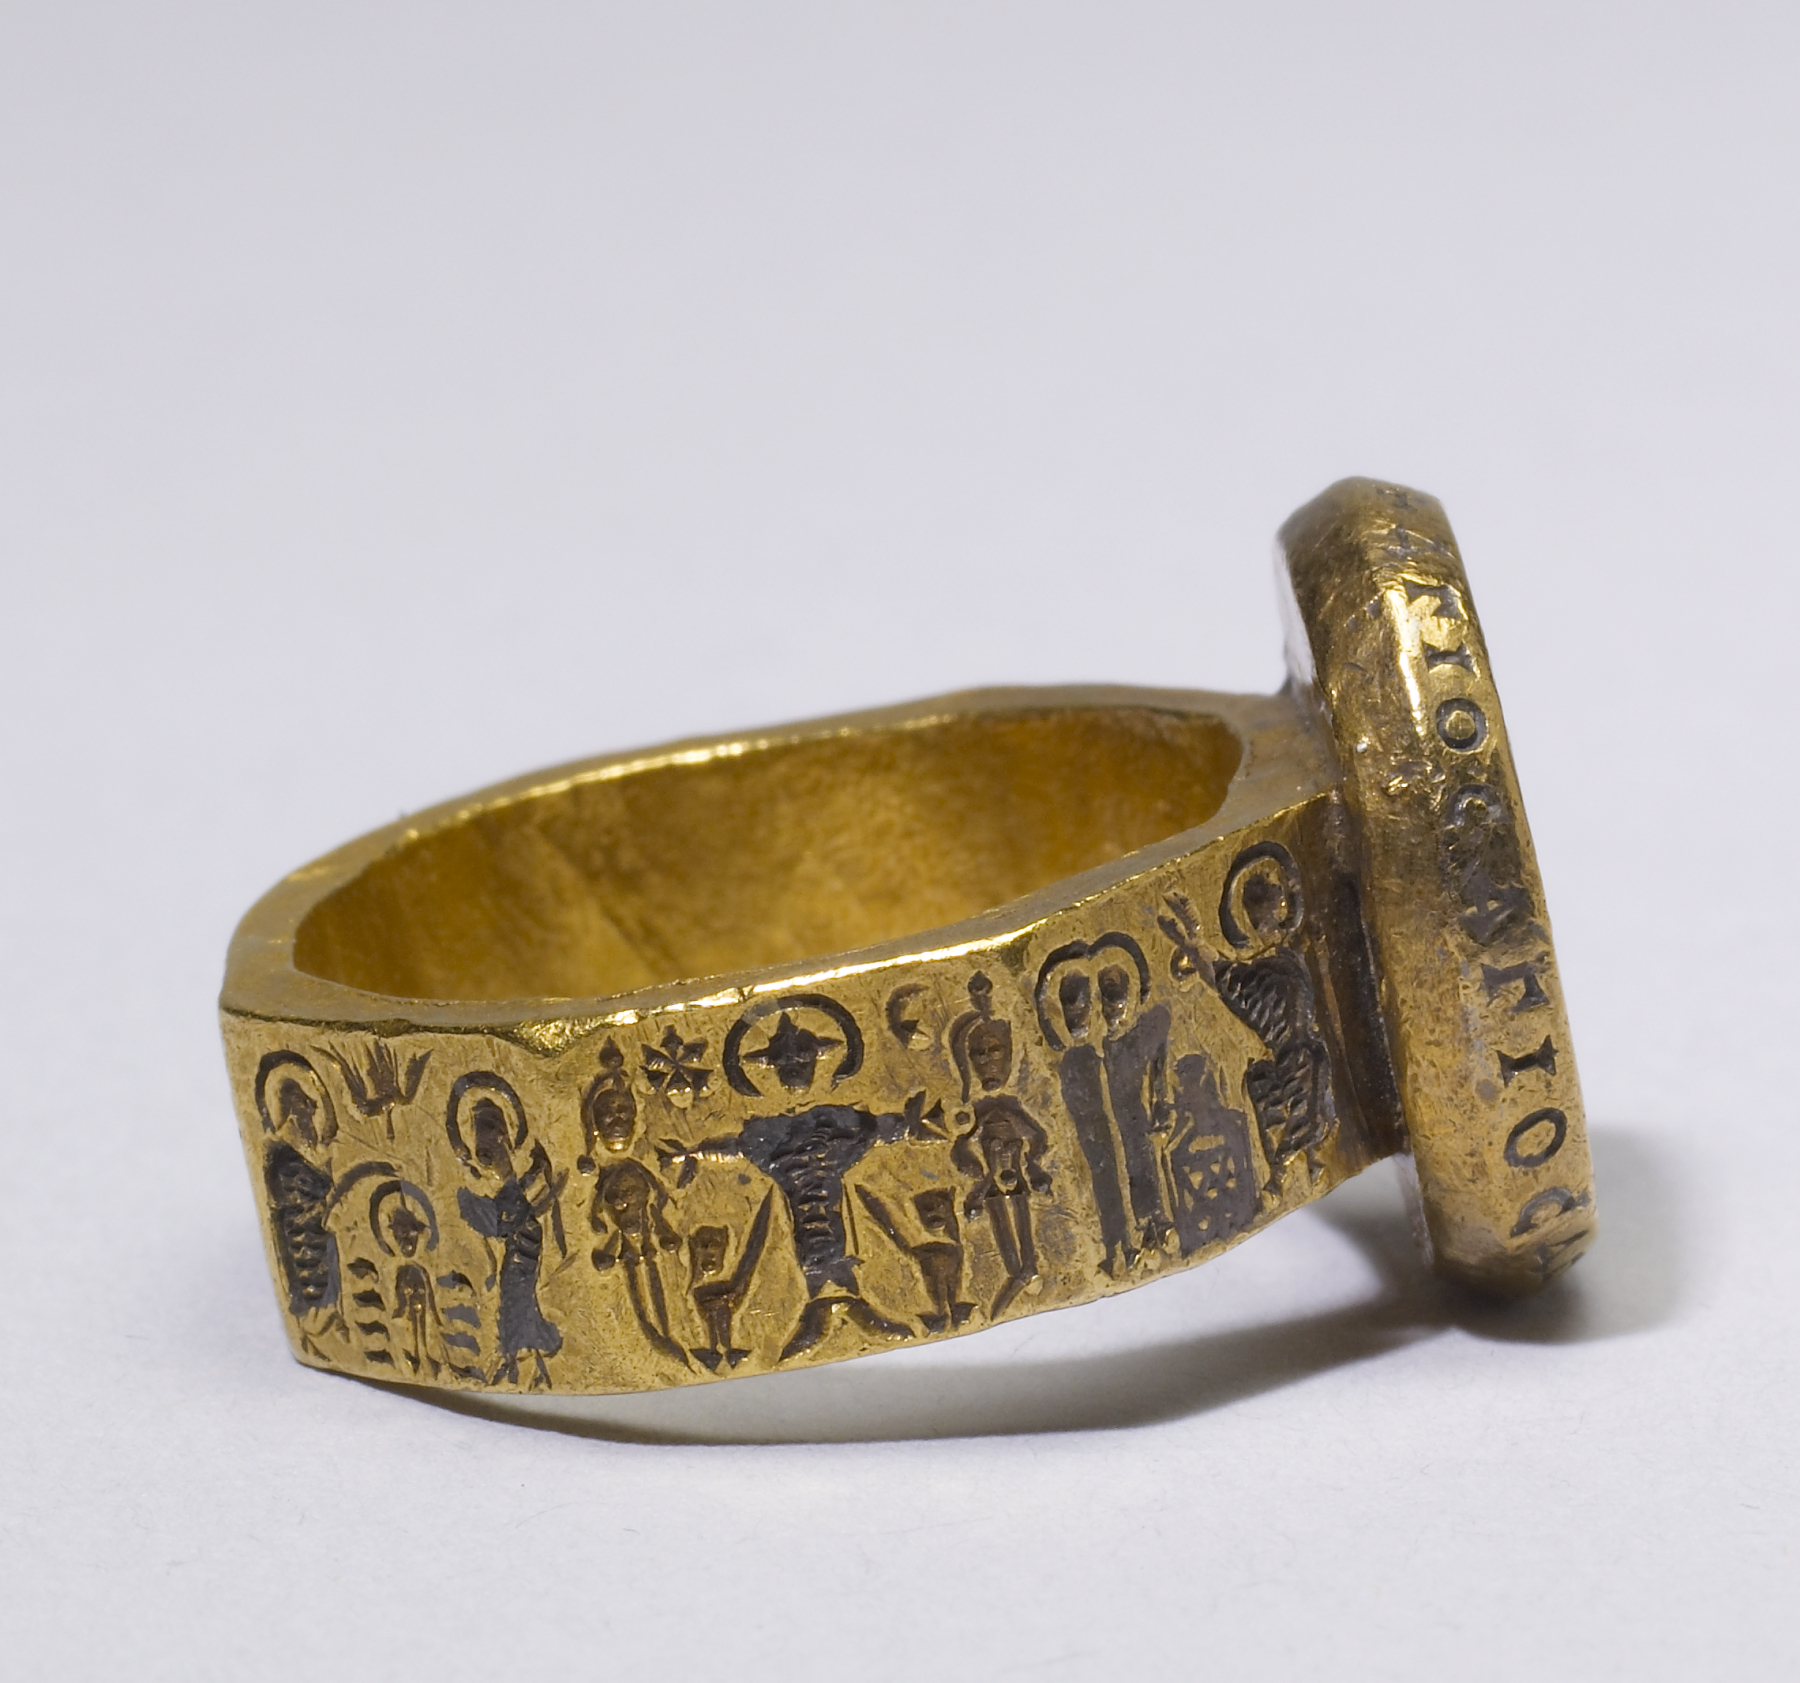 Marriage Ring With Scenes From The Life Of Christ C 6th Century Walters Art Museum